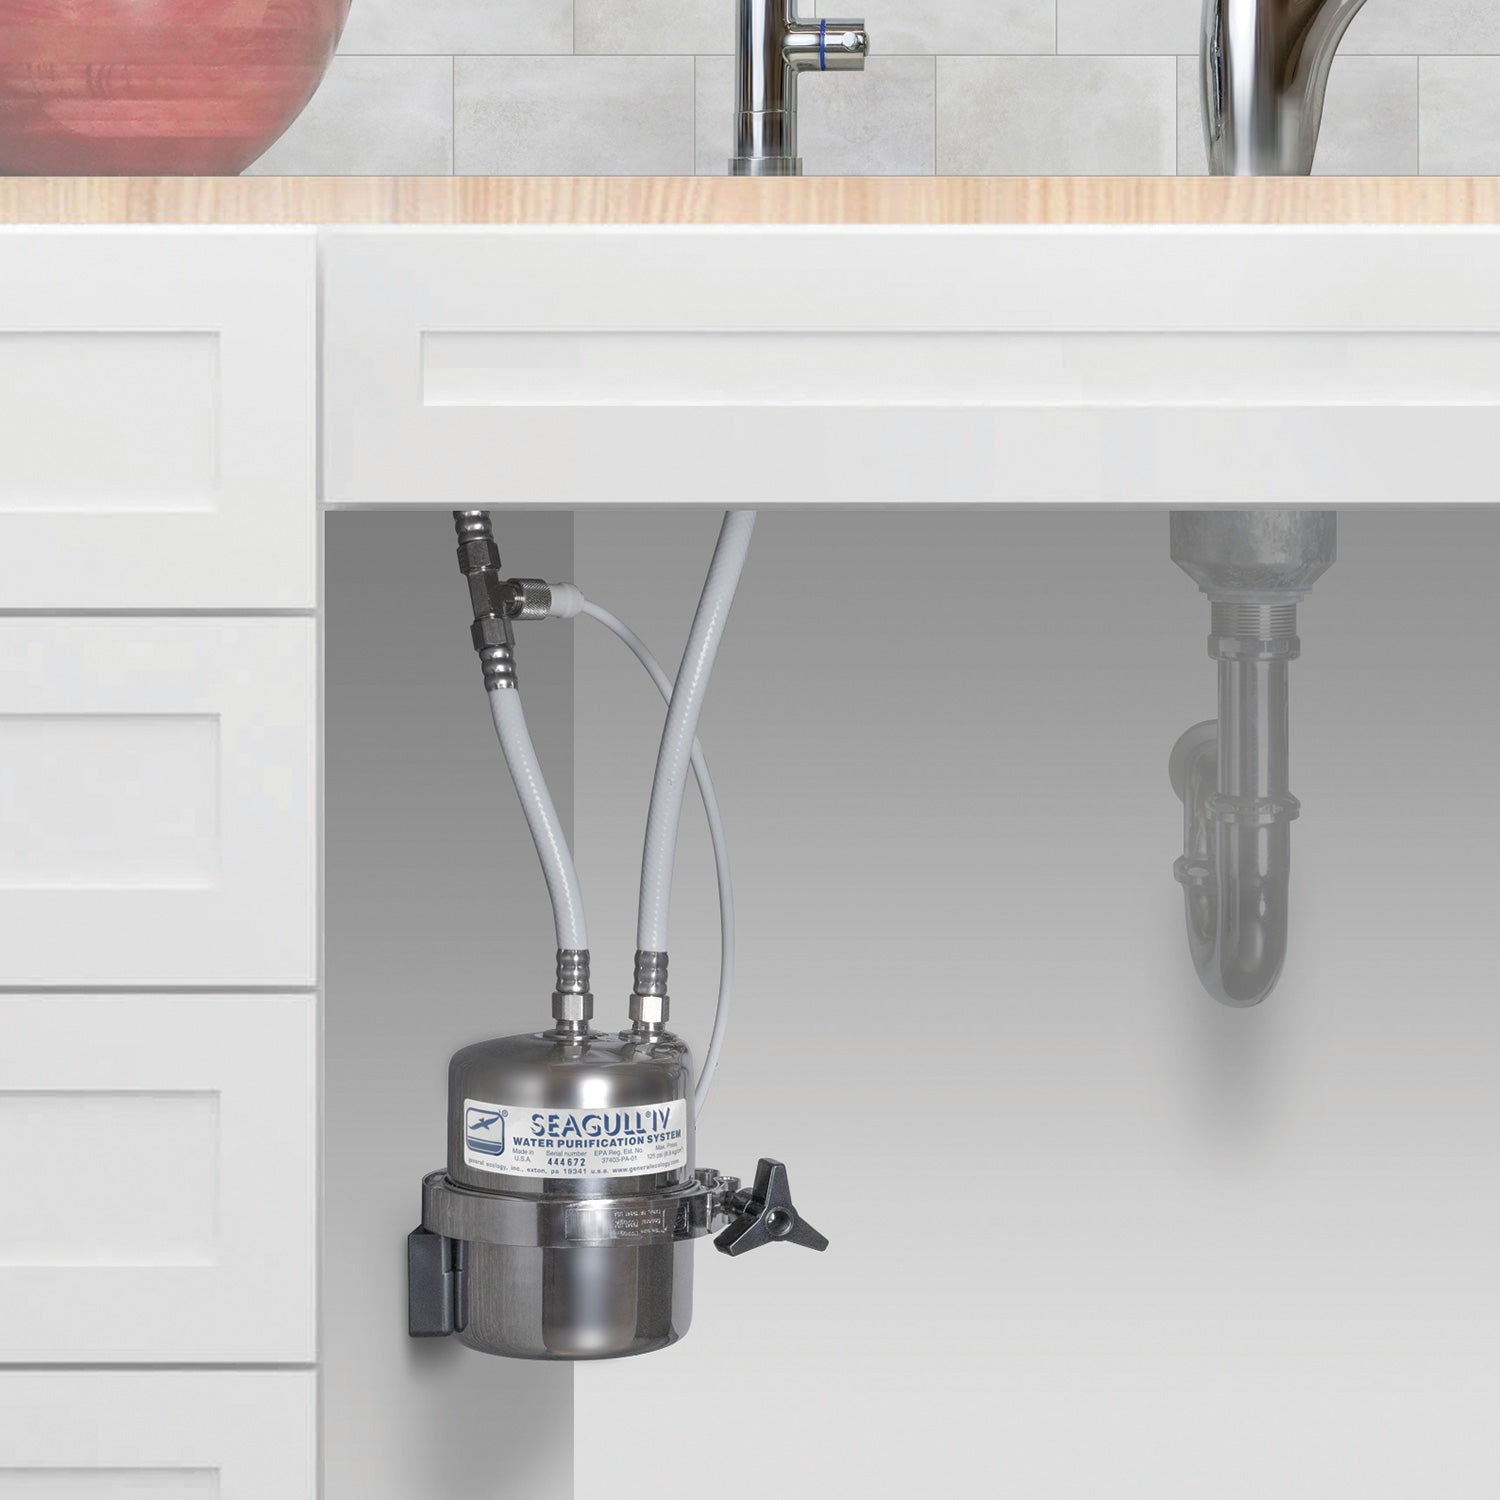 image showing how easy it is to connect the seagull 4 water filter to your sink